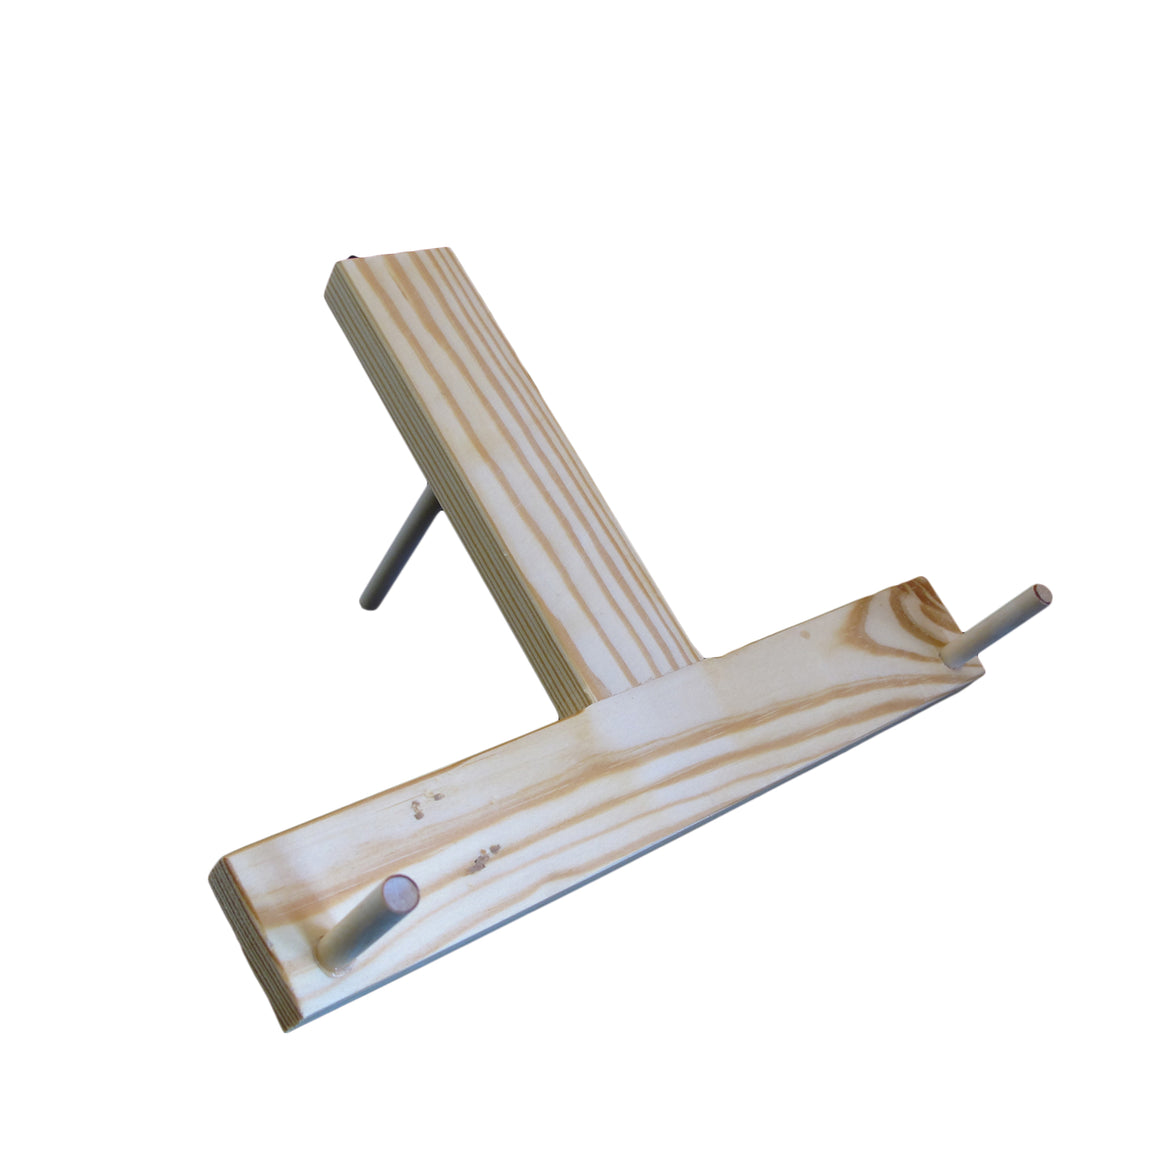 Wood lap harp display stand